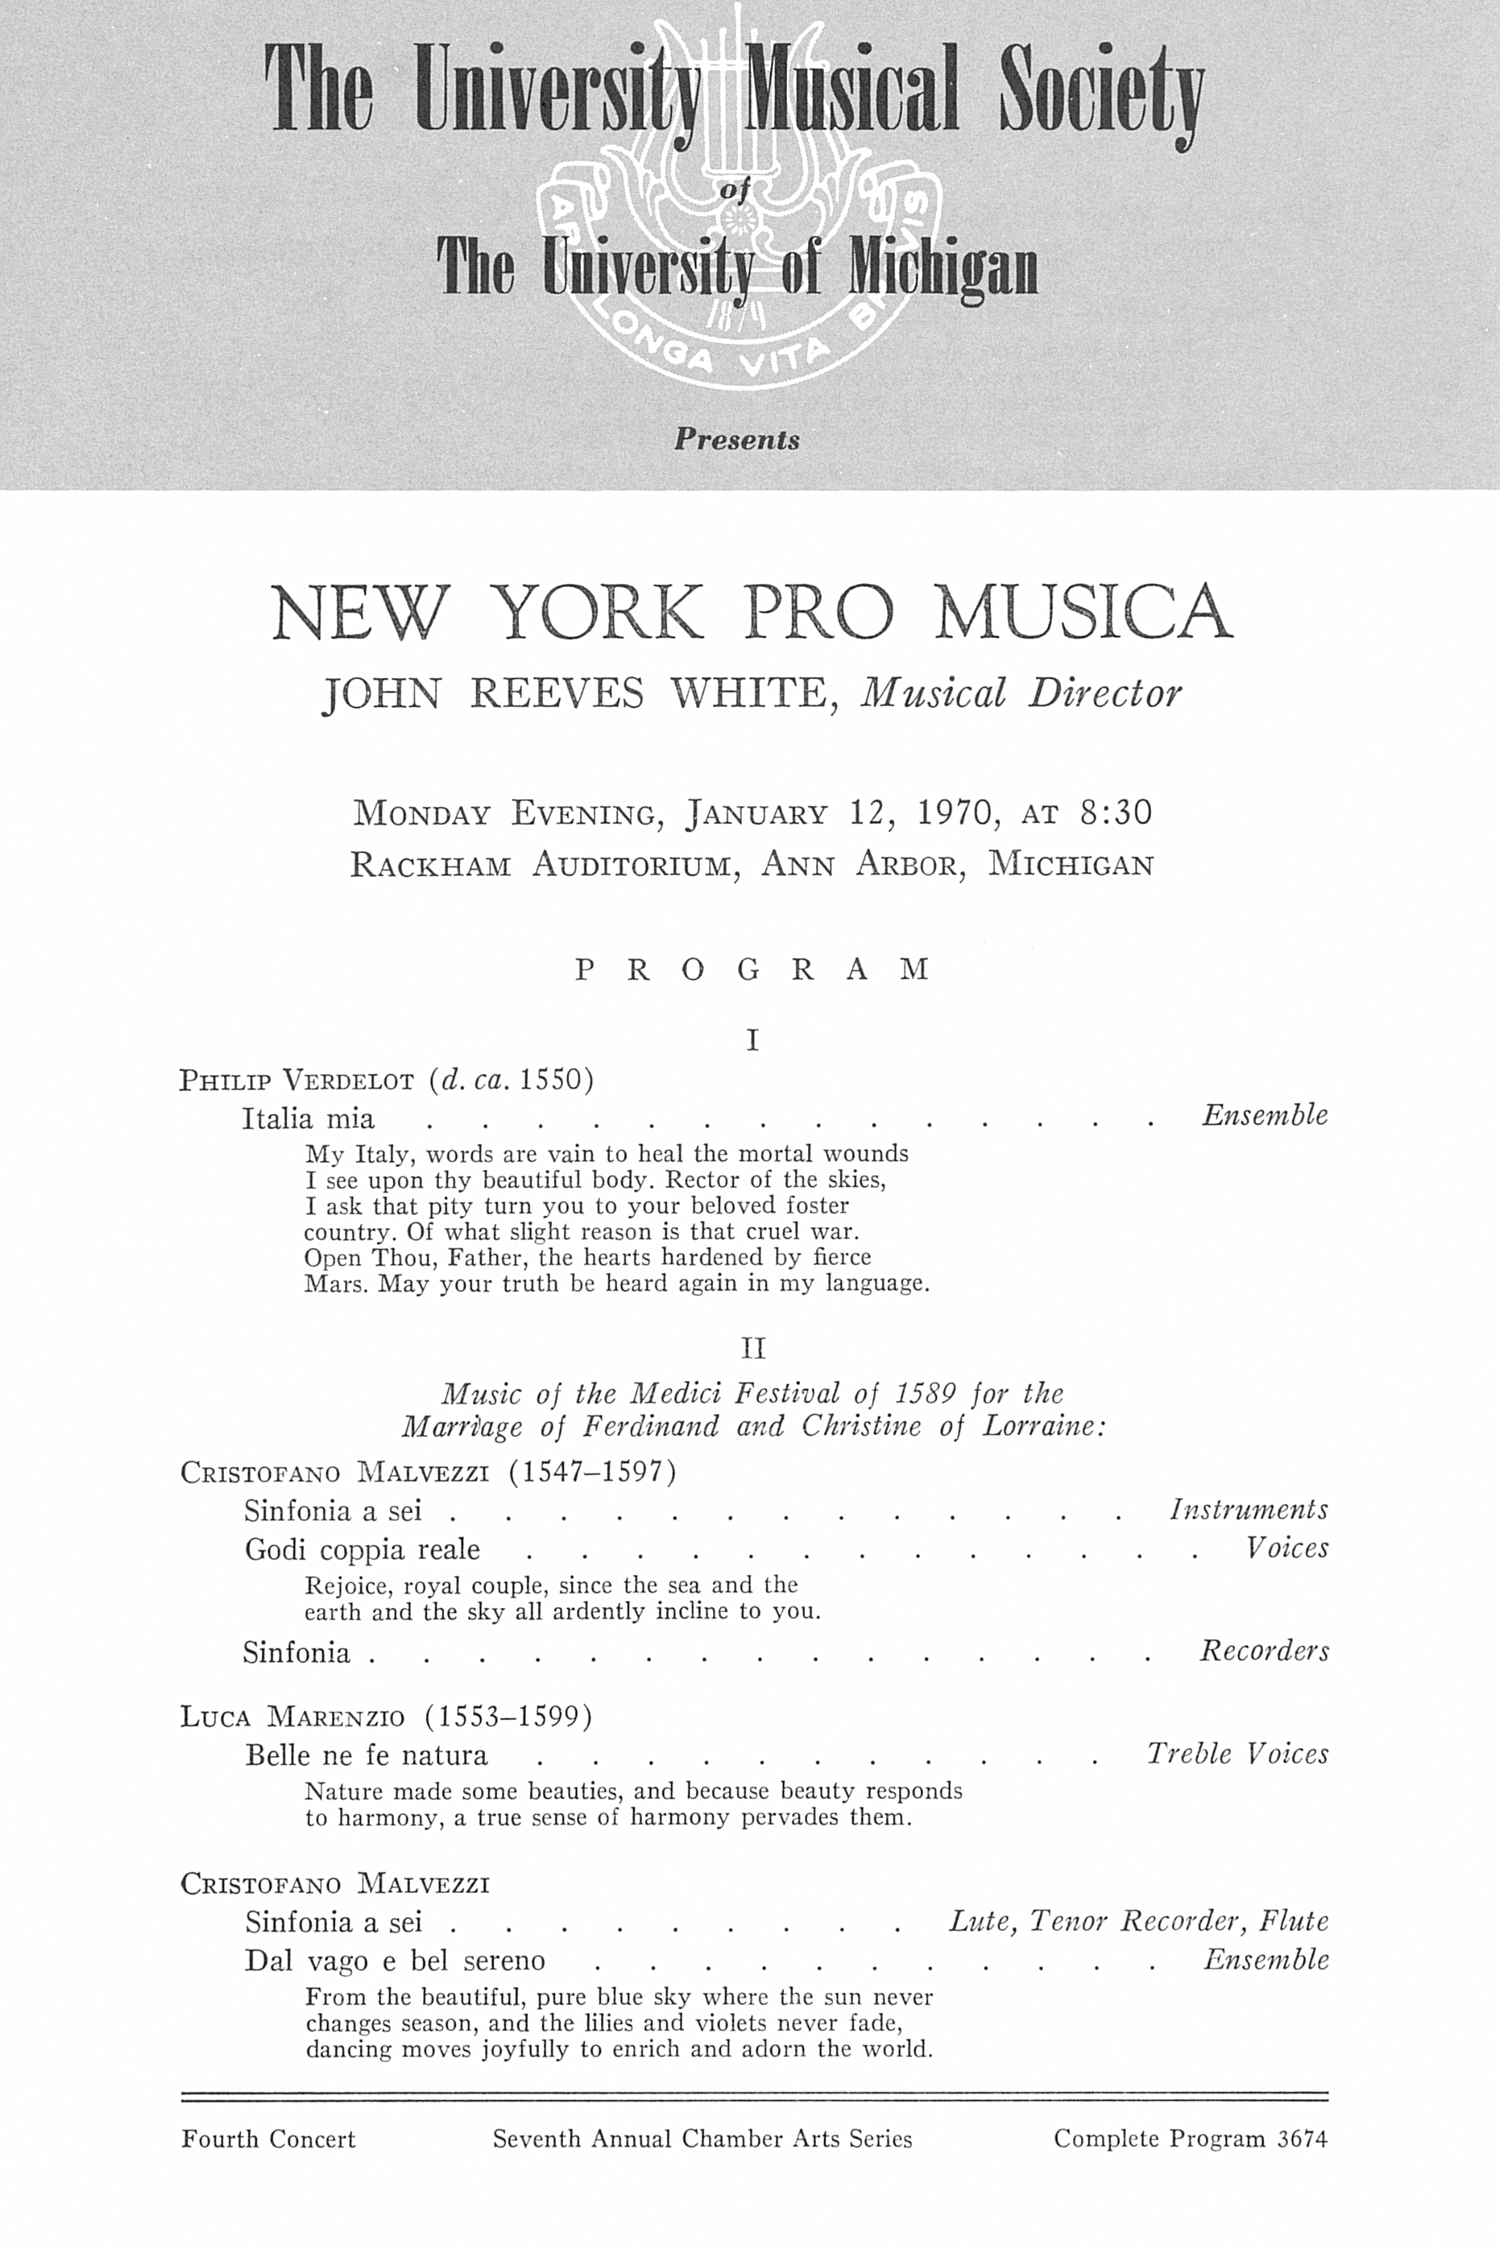 UMS Concert Program, January 12, 1970: New York Pro Musica -- John Reeves White image